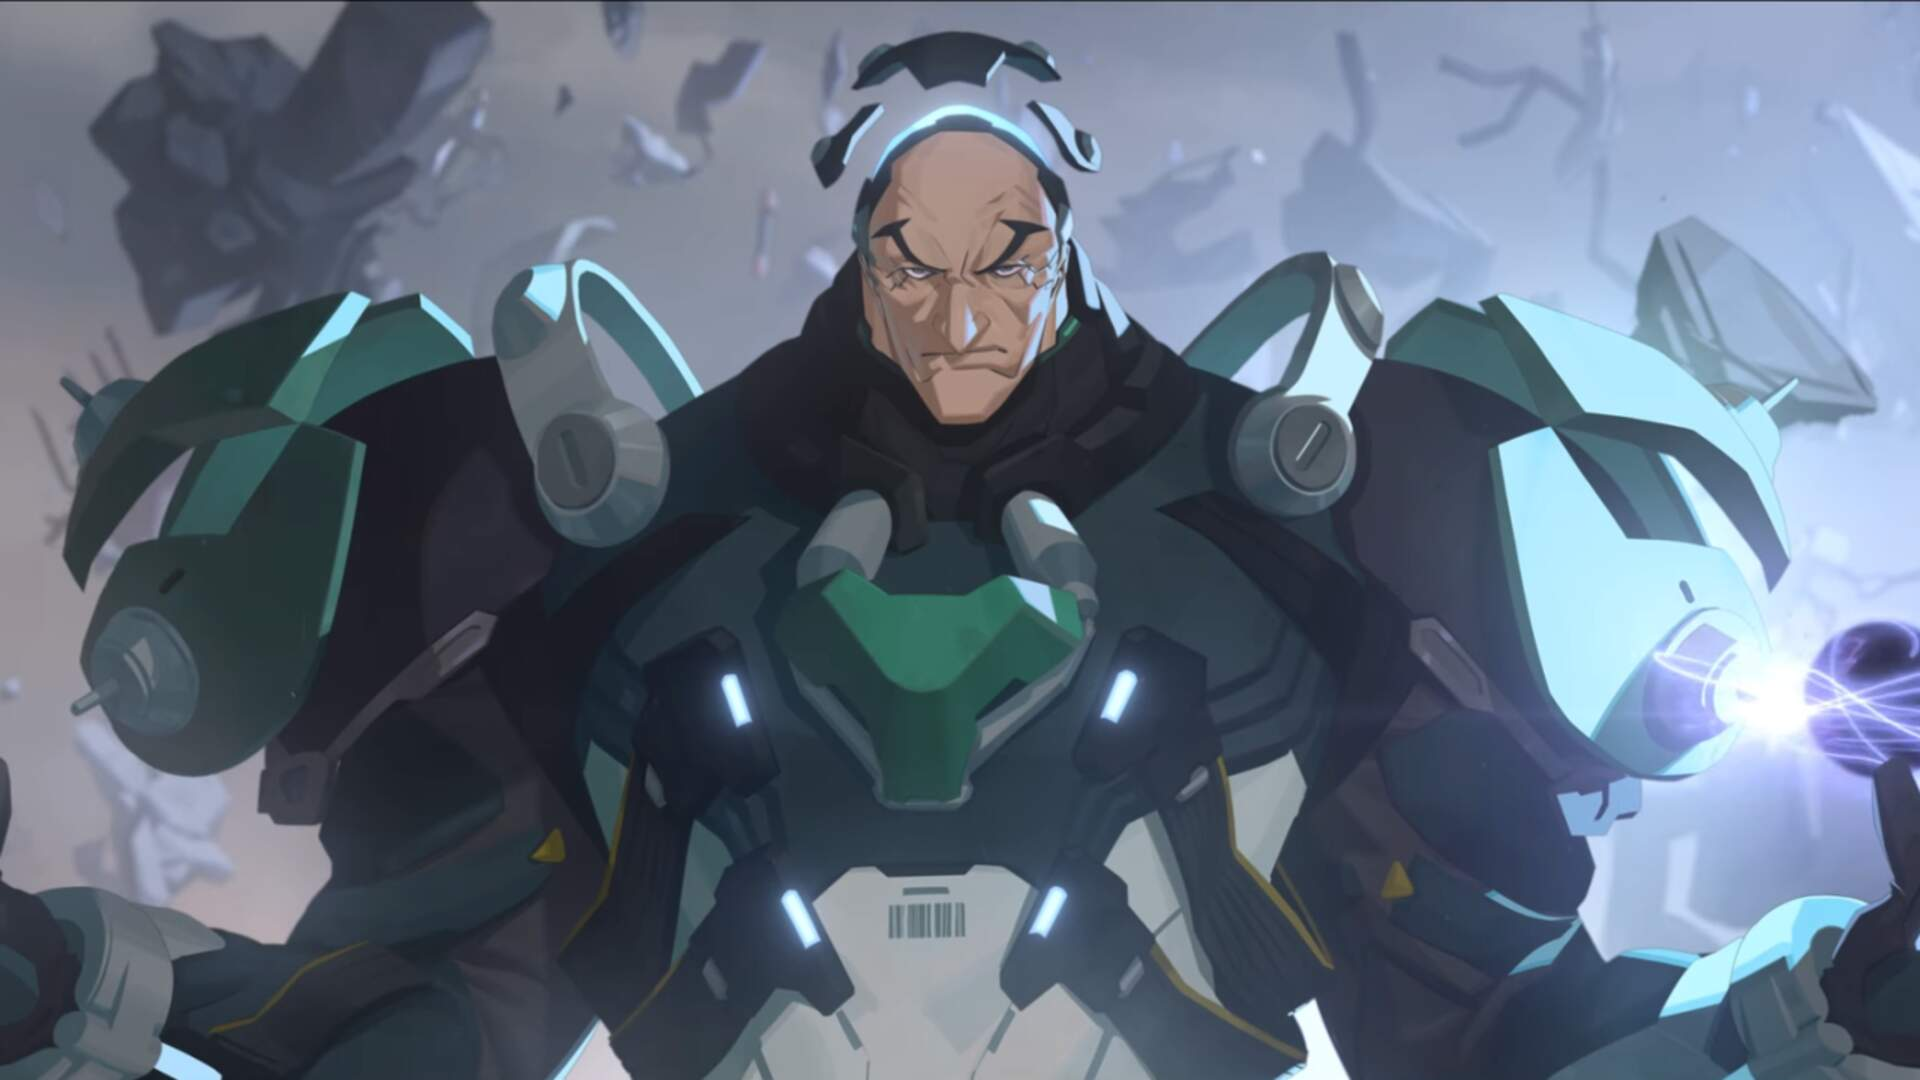 Sigma, Overwatch's Newest Hero, is a Gravity-Bending Mad Scientist